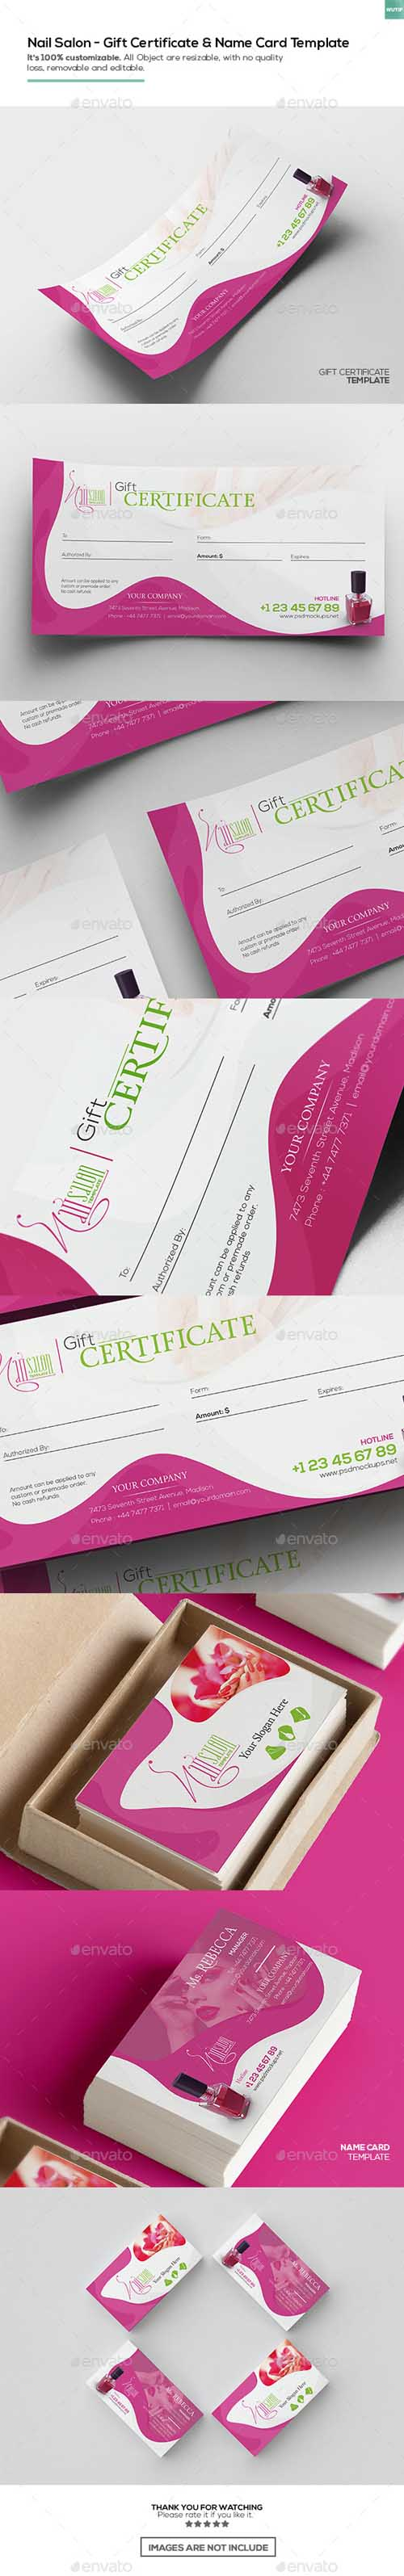 Nail Salon/ Gift Certificate and Business Card Template 16150102